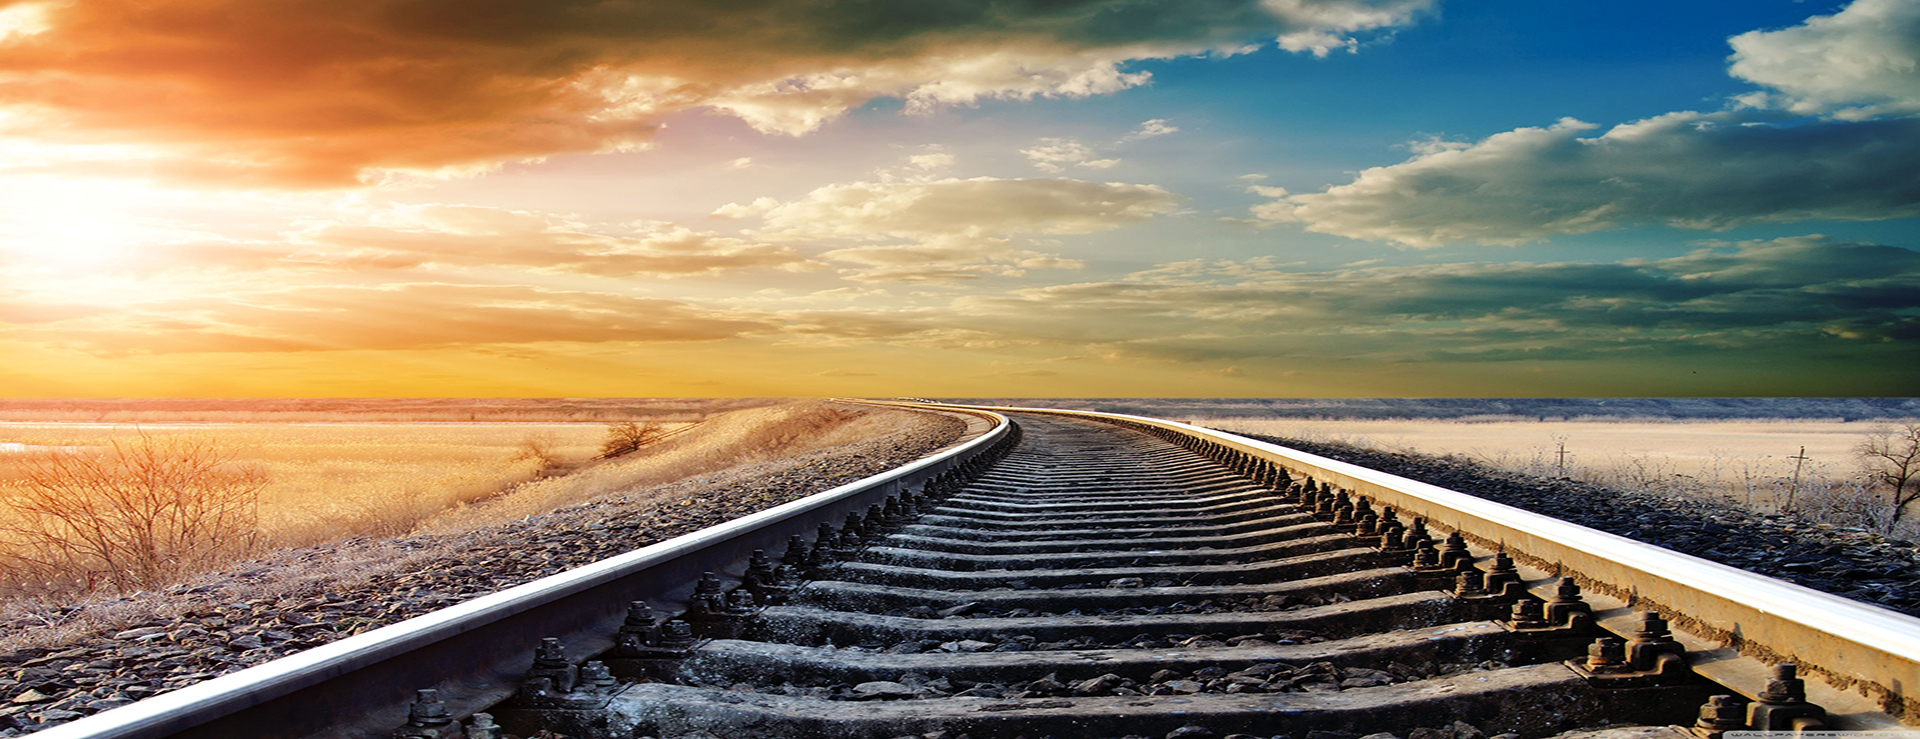 railway_wallpaper_hd-wide2